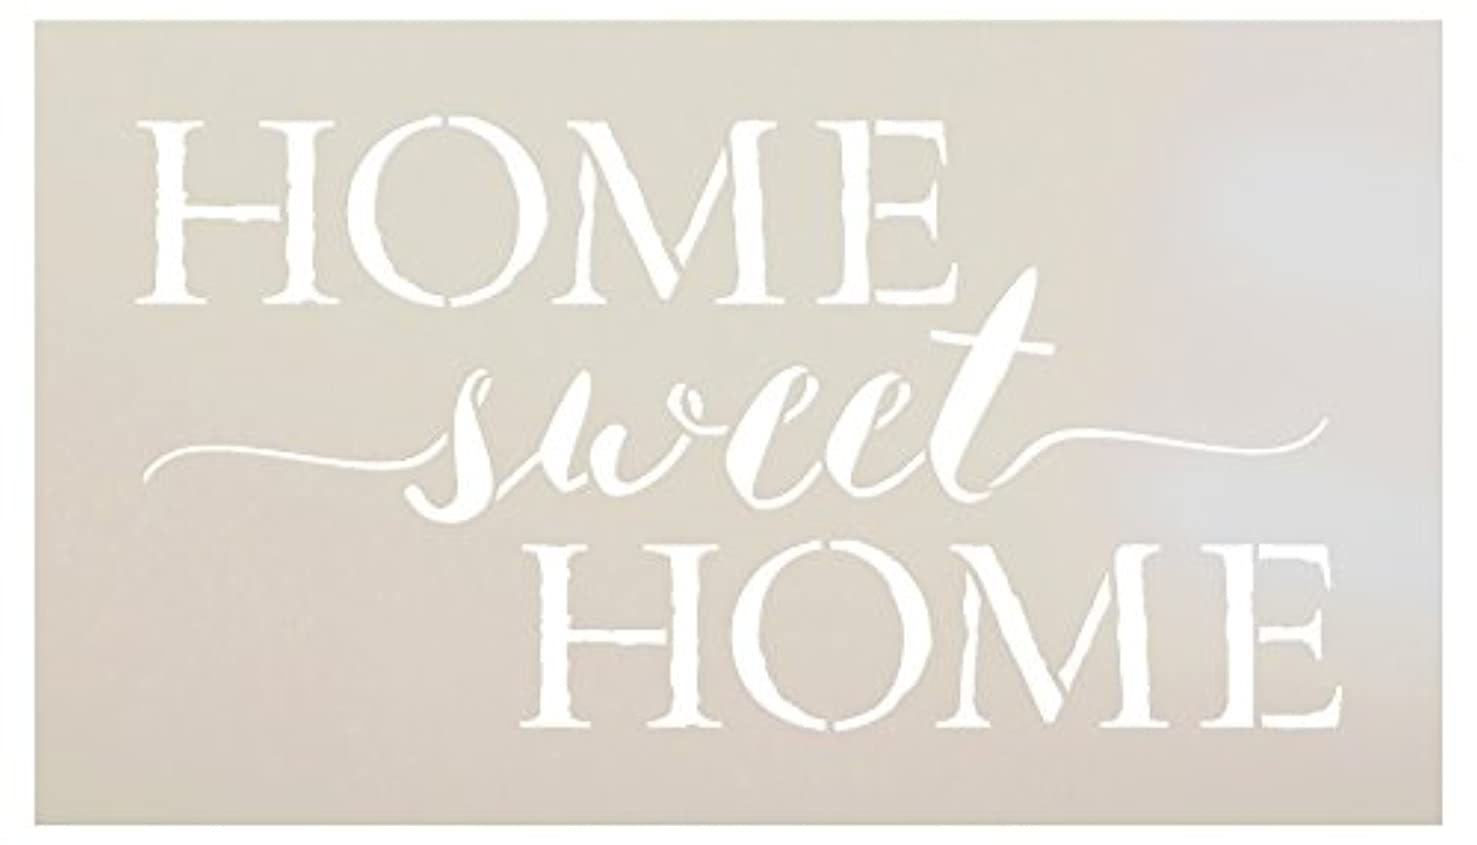 Home Sweet Home Word Stencil by StudioR12 | Charming Rustic - Reusable Mylar Template | Painting, Chalk, Mixed Media | DIY Home Decor - STCL1749 | Select Size | (14